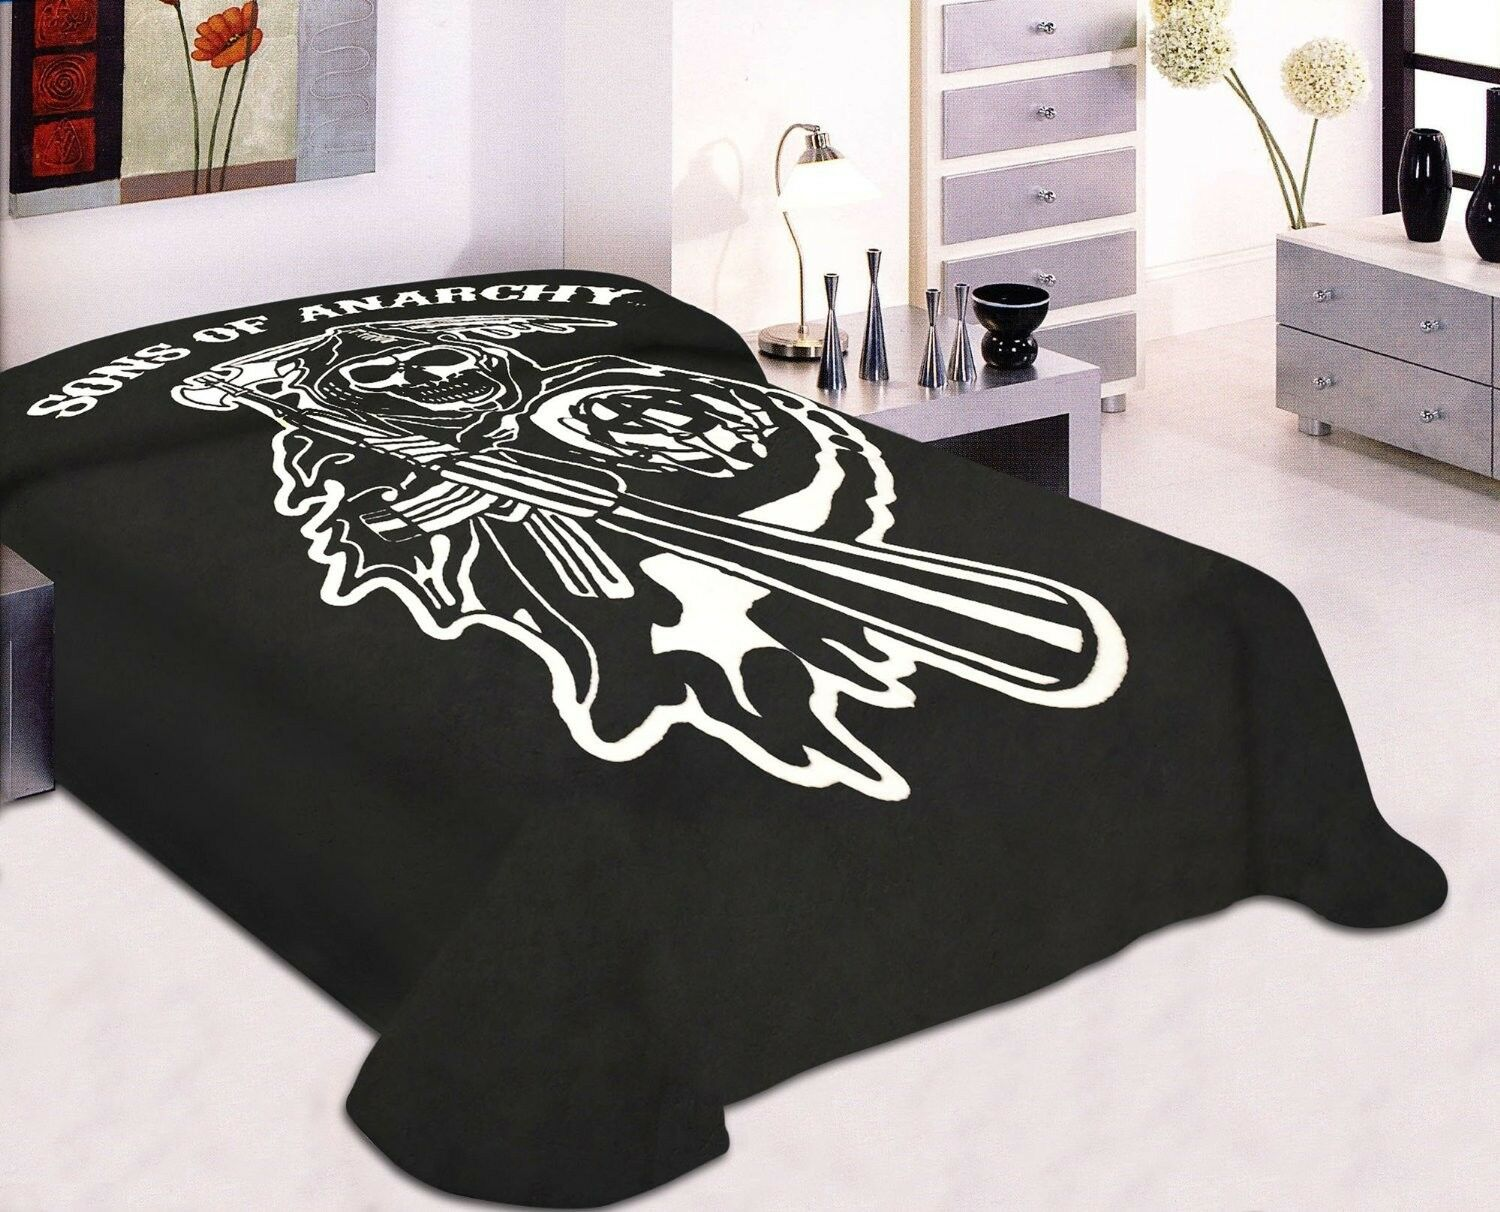 King/cal King Sons of Anarchy Blanket- SOA Merchandise Is Pe